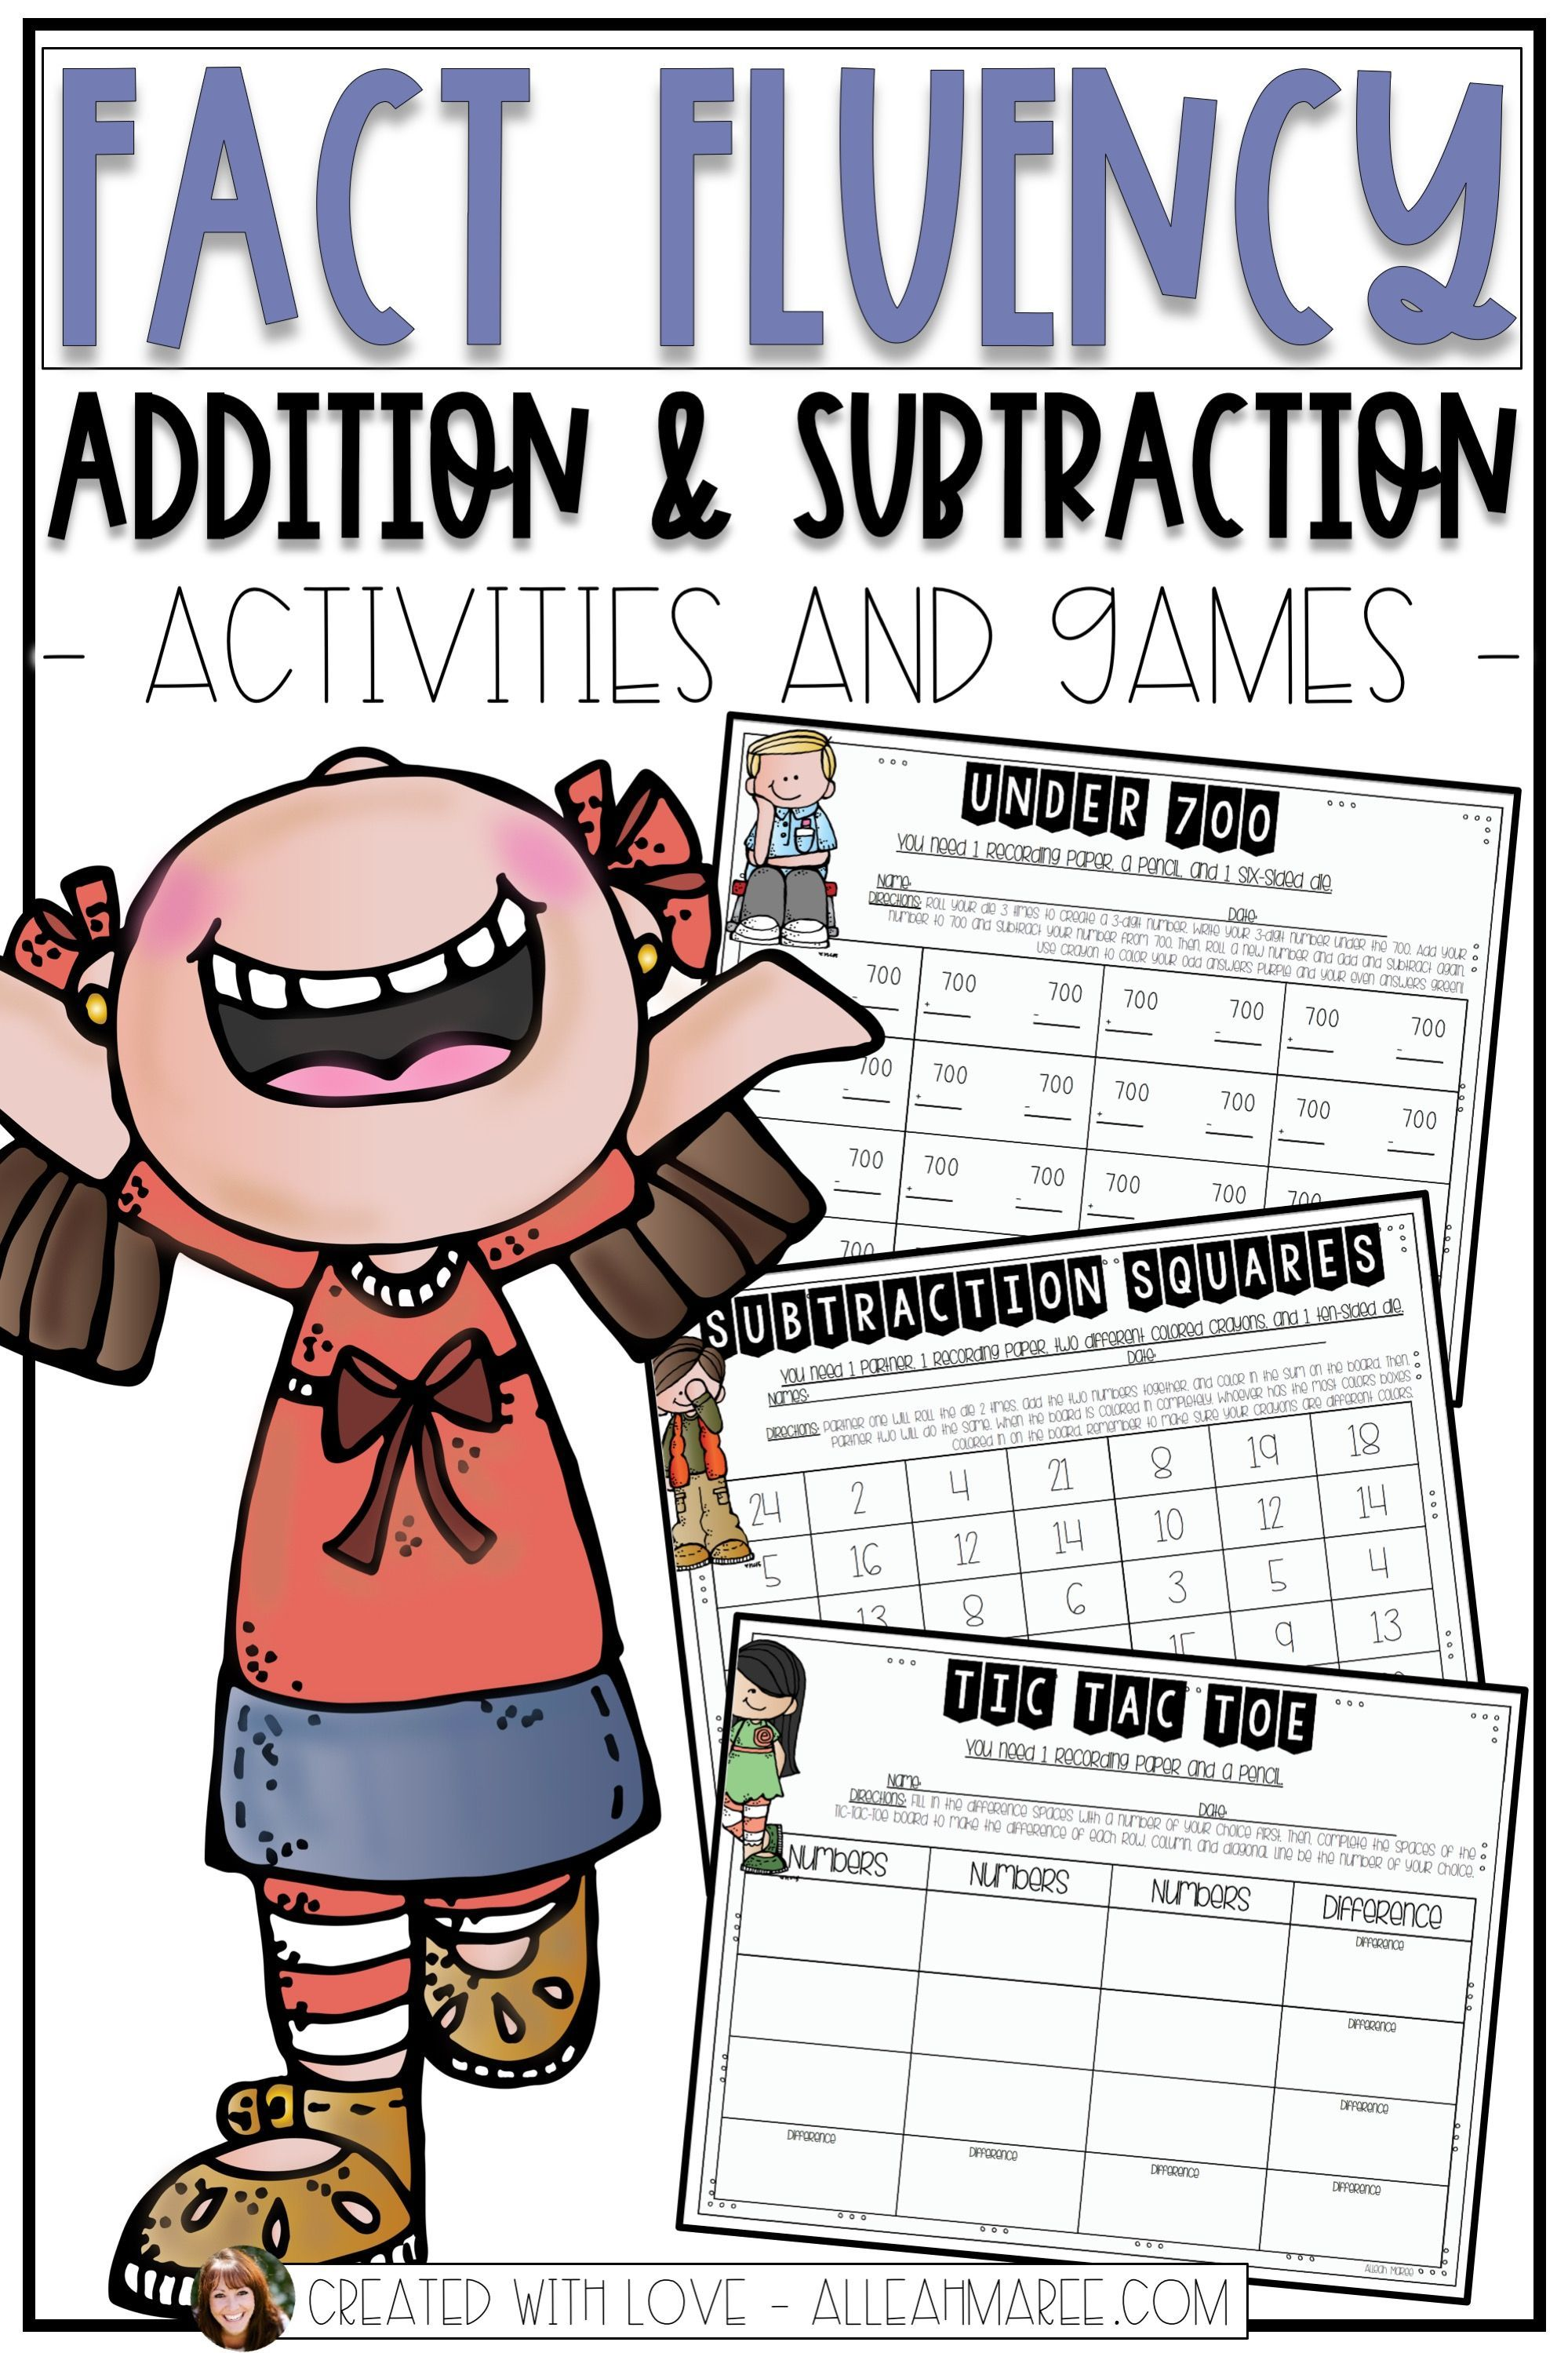 Fact Fluency Addition Amp Subtraction Activities And Games